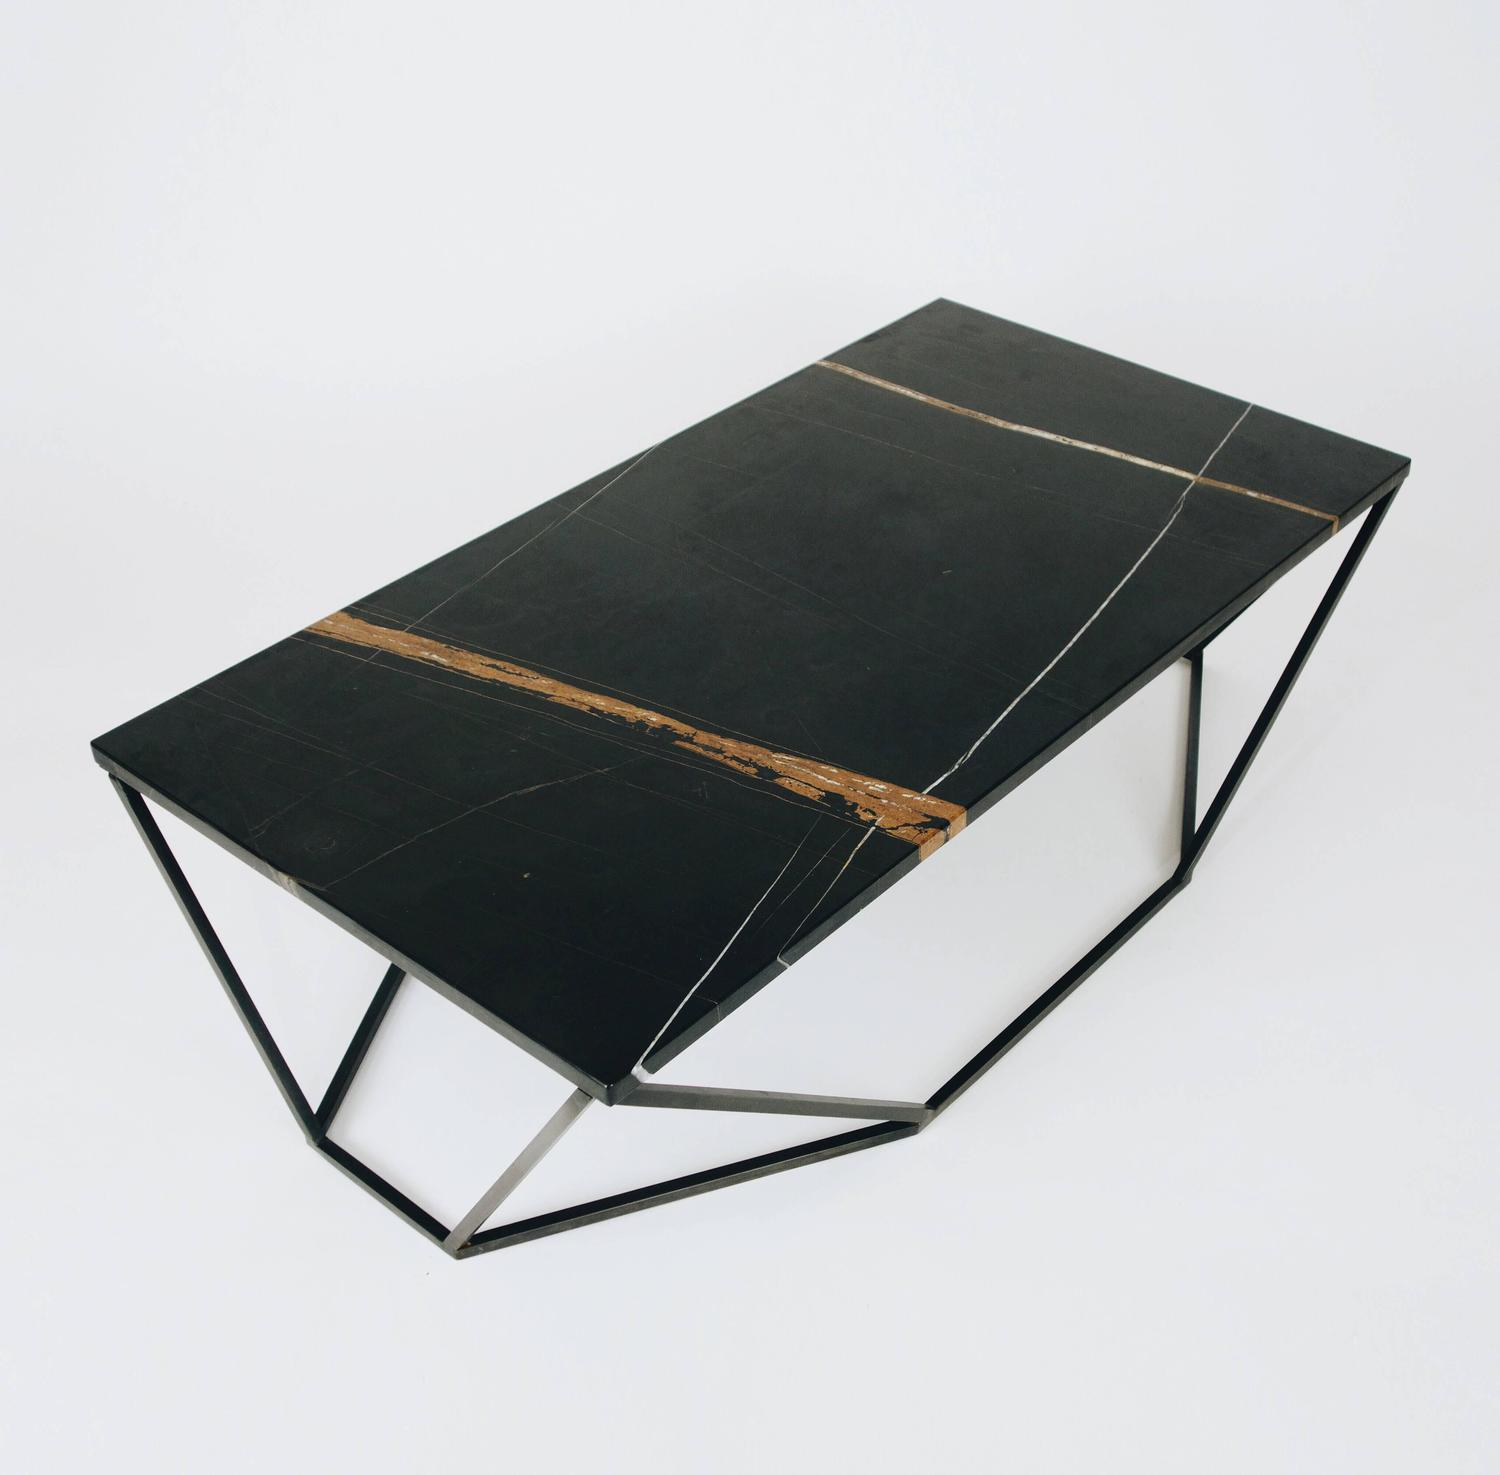 Found Square Coffee Table In Black Marble And Black Steel: Dusk Coffee Table, Small In Polished Black Marble And